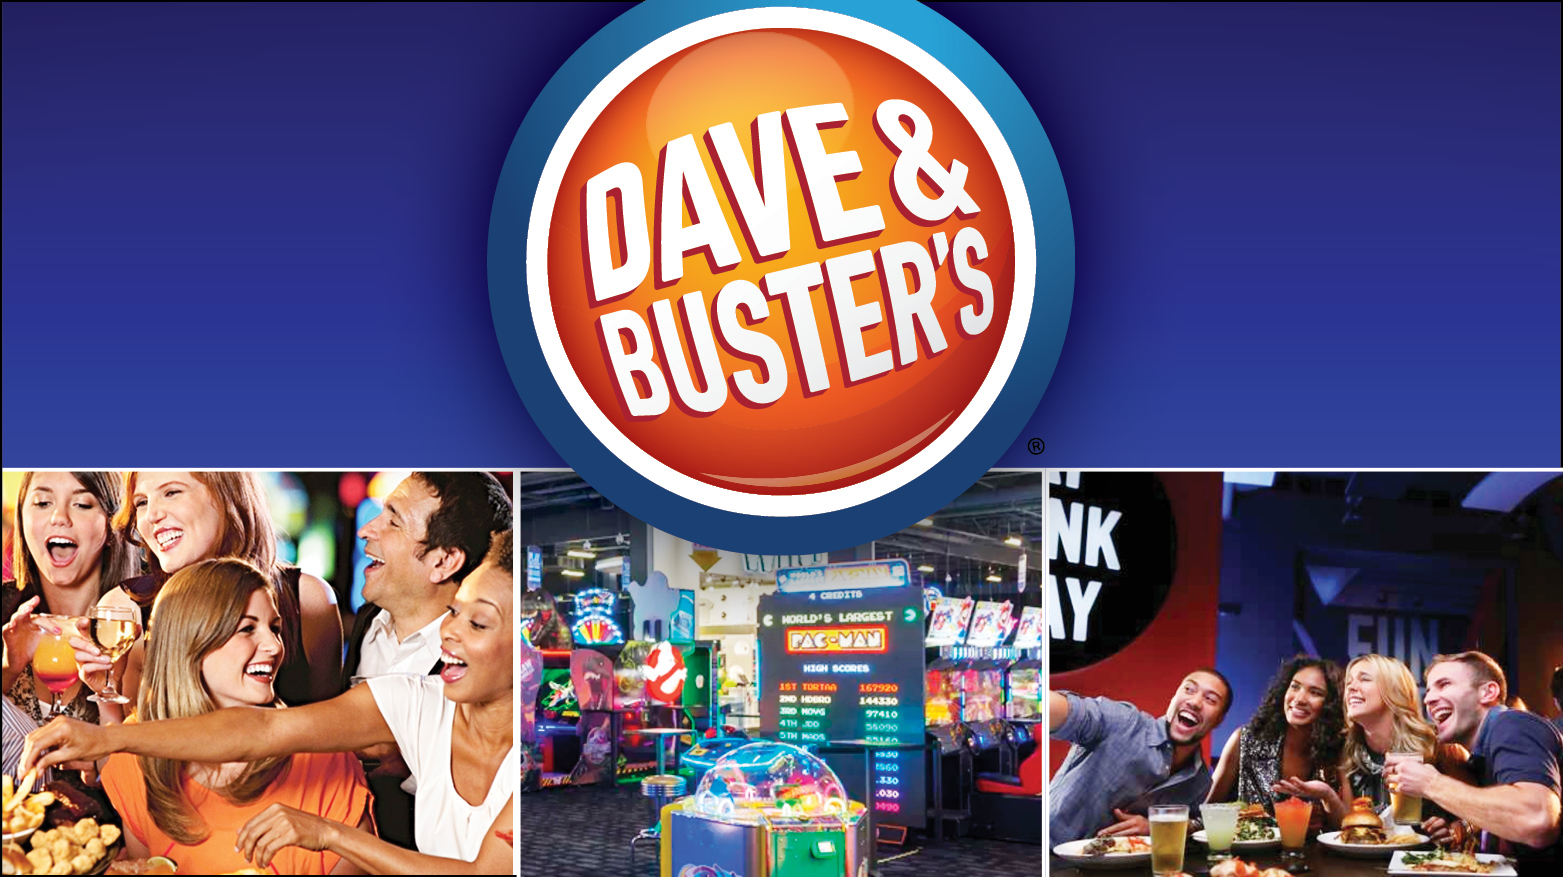 Dave and Busters Trip: Jacksonville